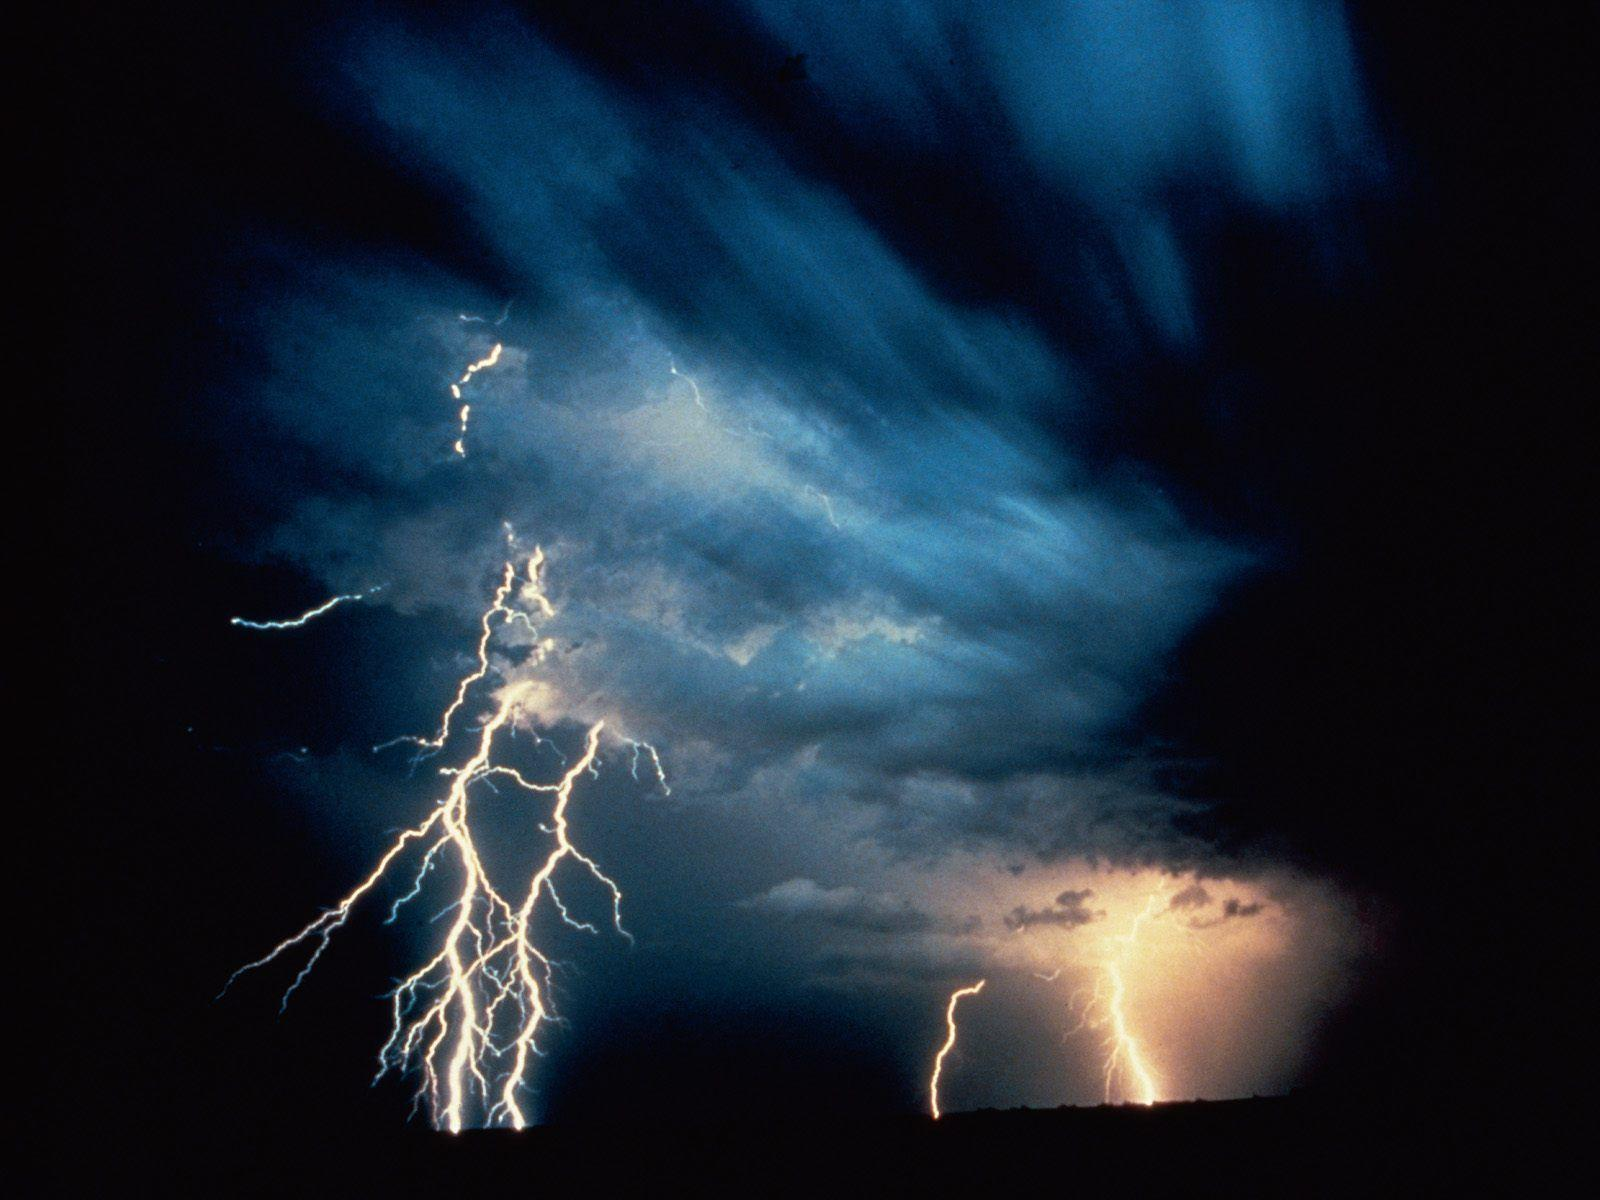 Image For > Tornado And Lightning Storm Wallpapers